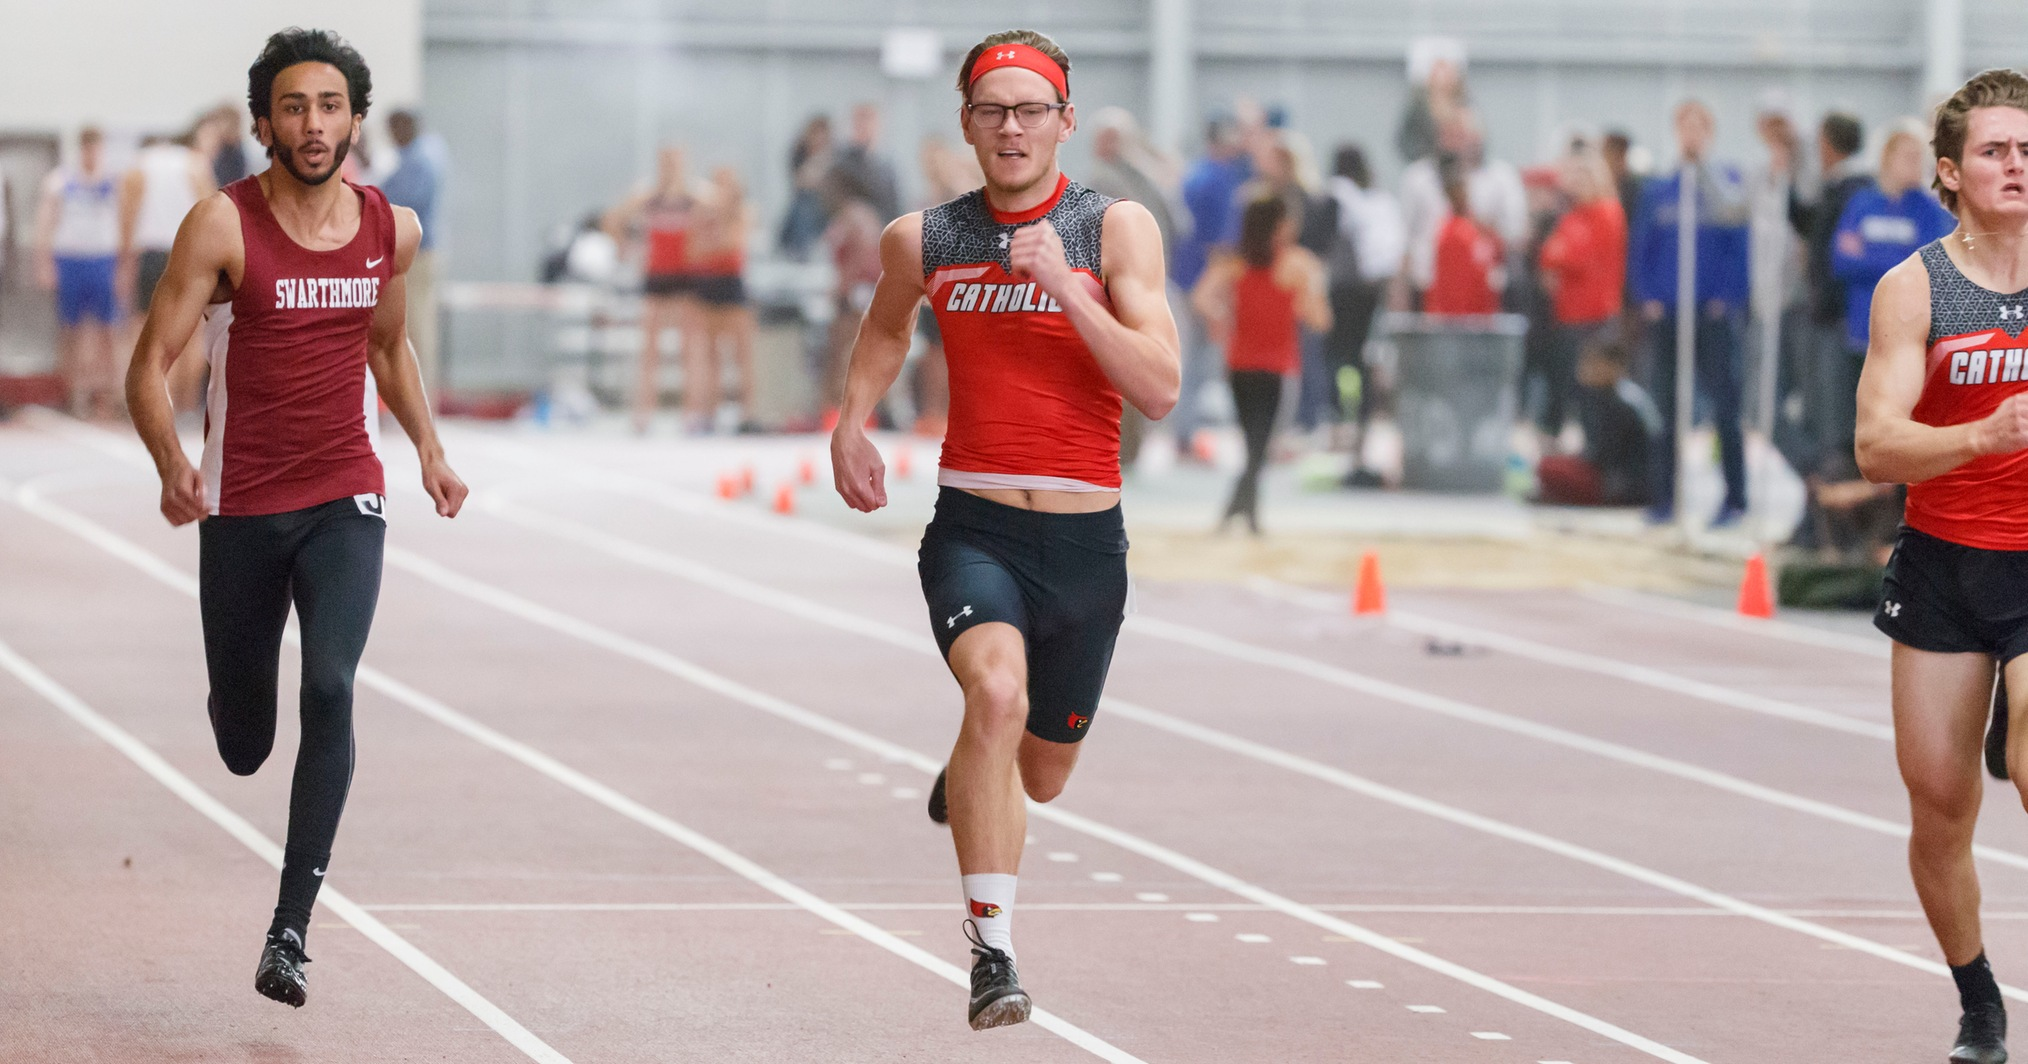 Cardinals Record Multiple Personal Bests at the Patriot Games